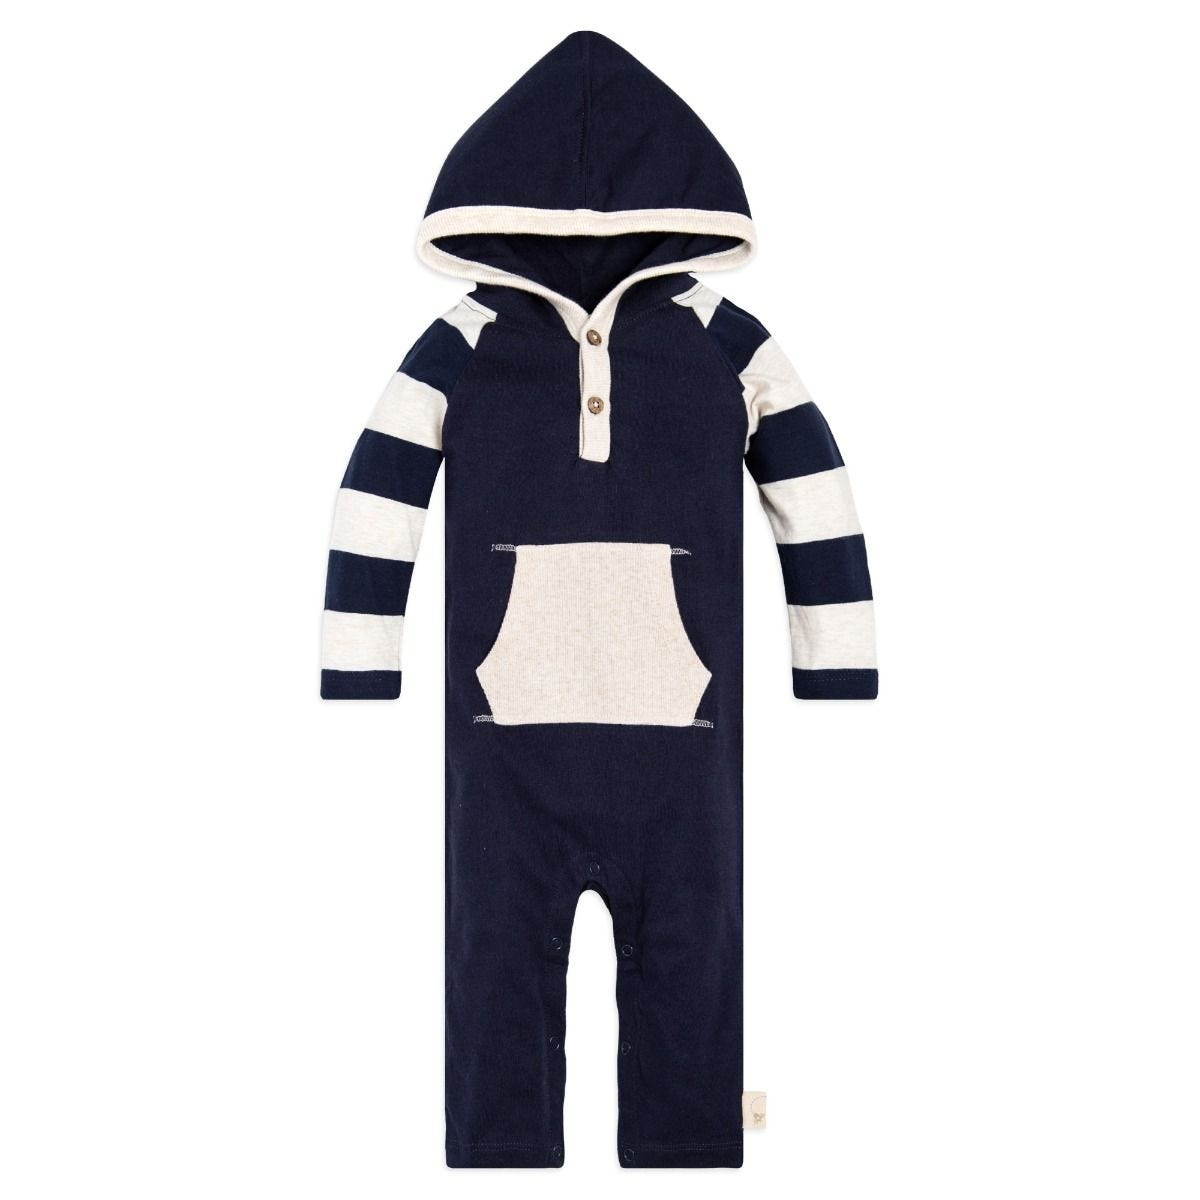 3be81b46dfe1 Baby Rugby Stripe Hooded Organic One Piece Jumpsuit